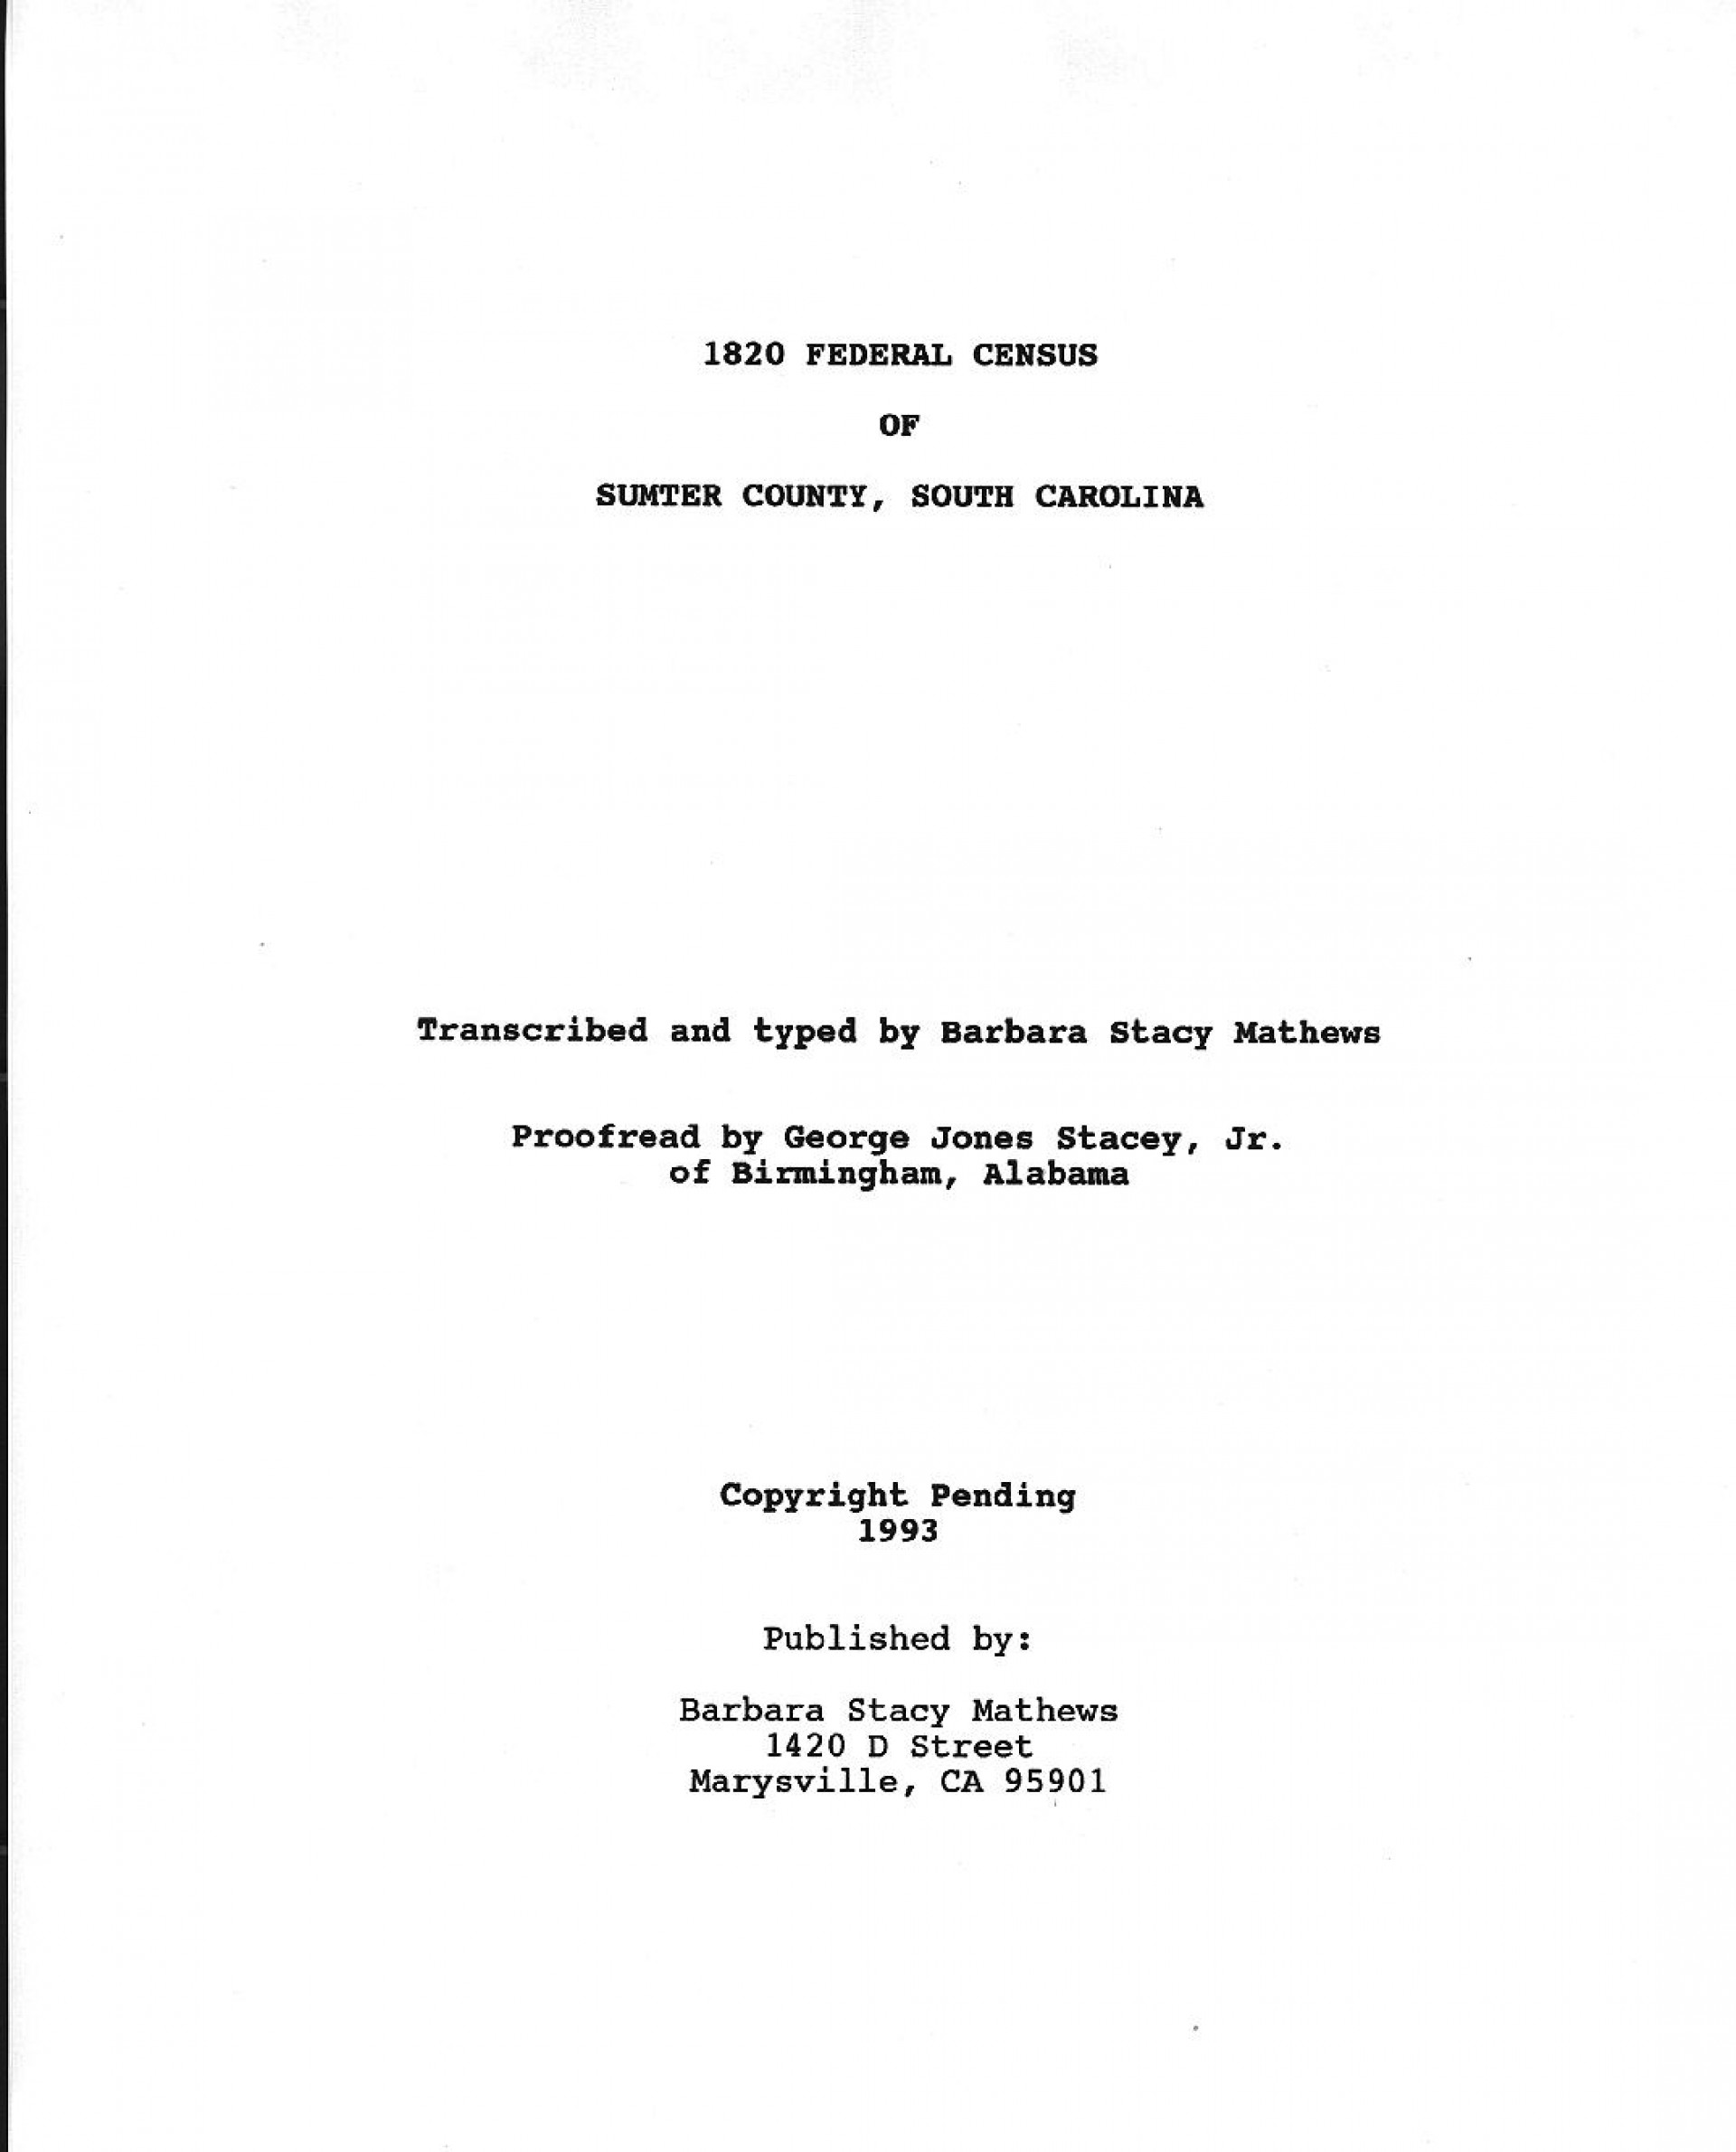 016 Cover Page Template For Researcher Ideas Collection Sample Project Mla Gidiyedformapolitica Of Projectnos Striking A Research Paper Title Example Layout Format 1920